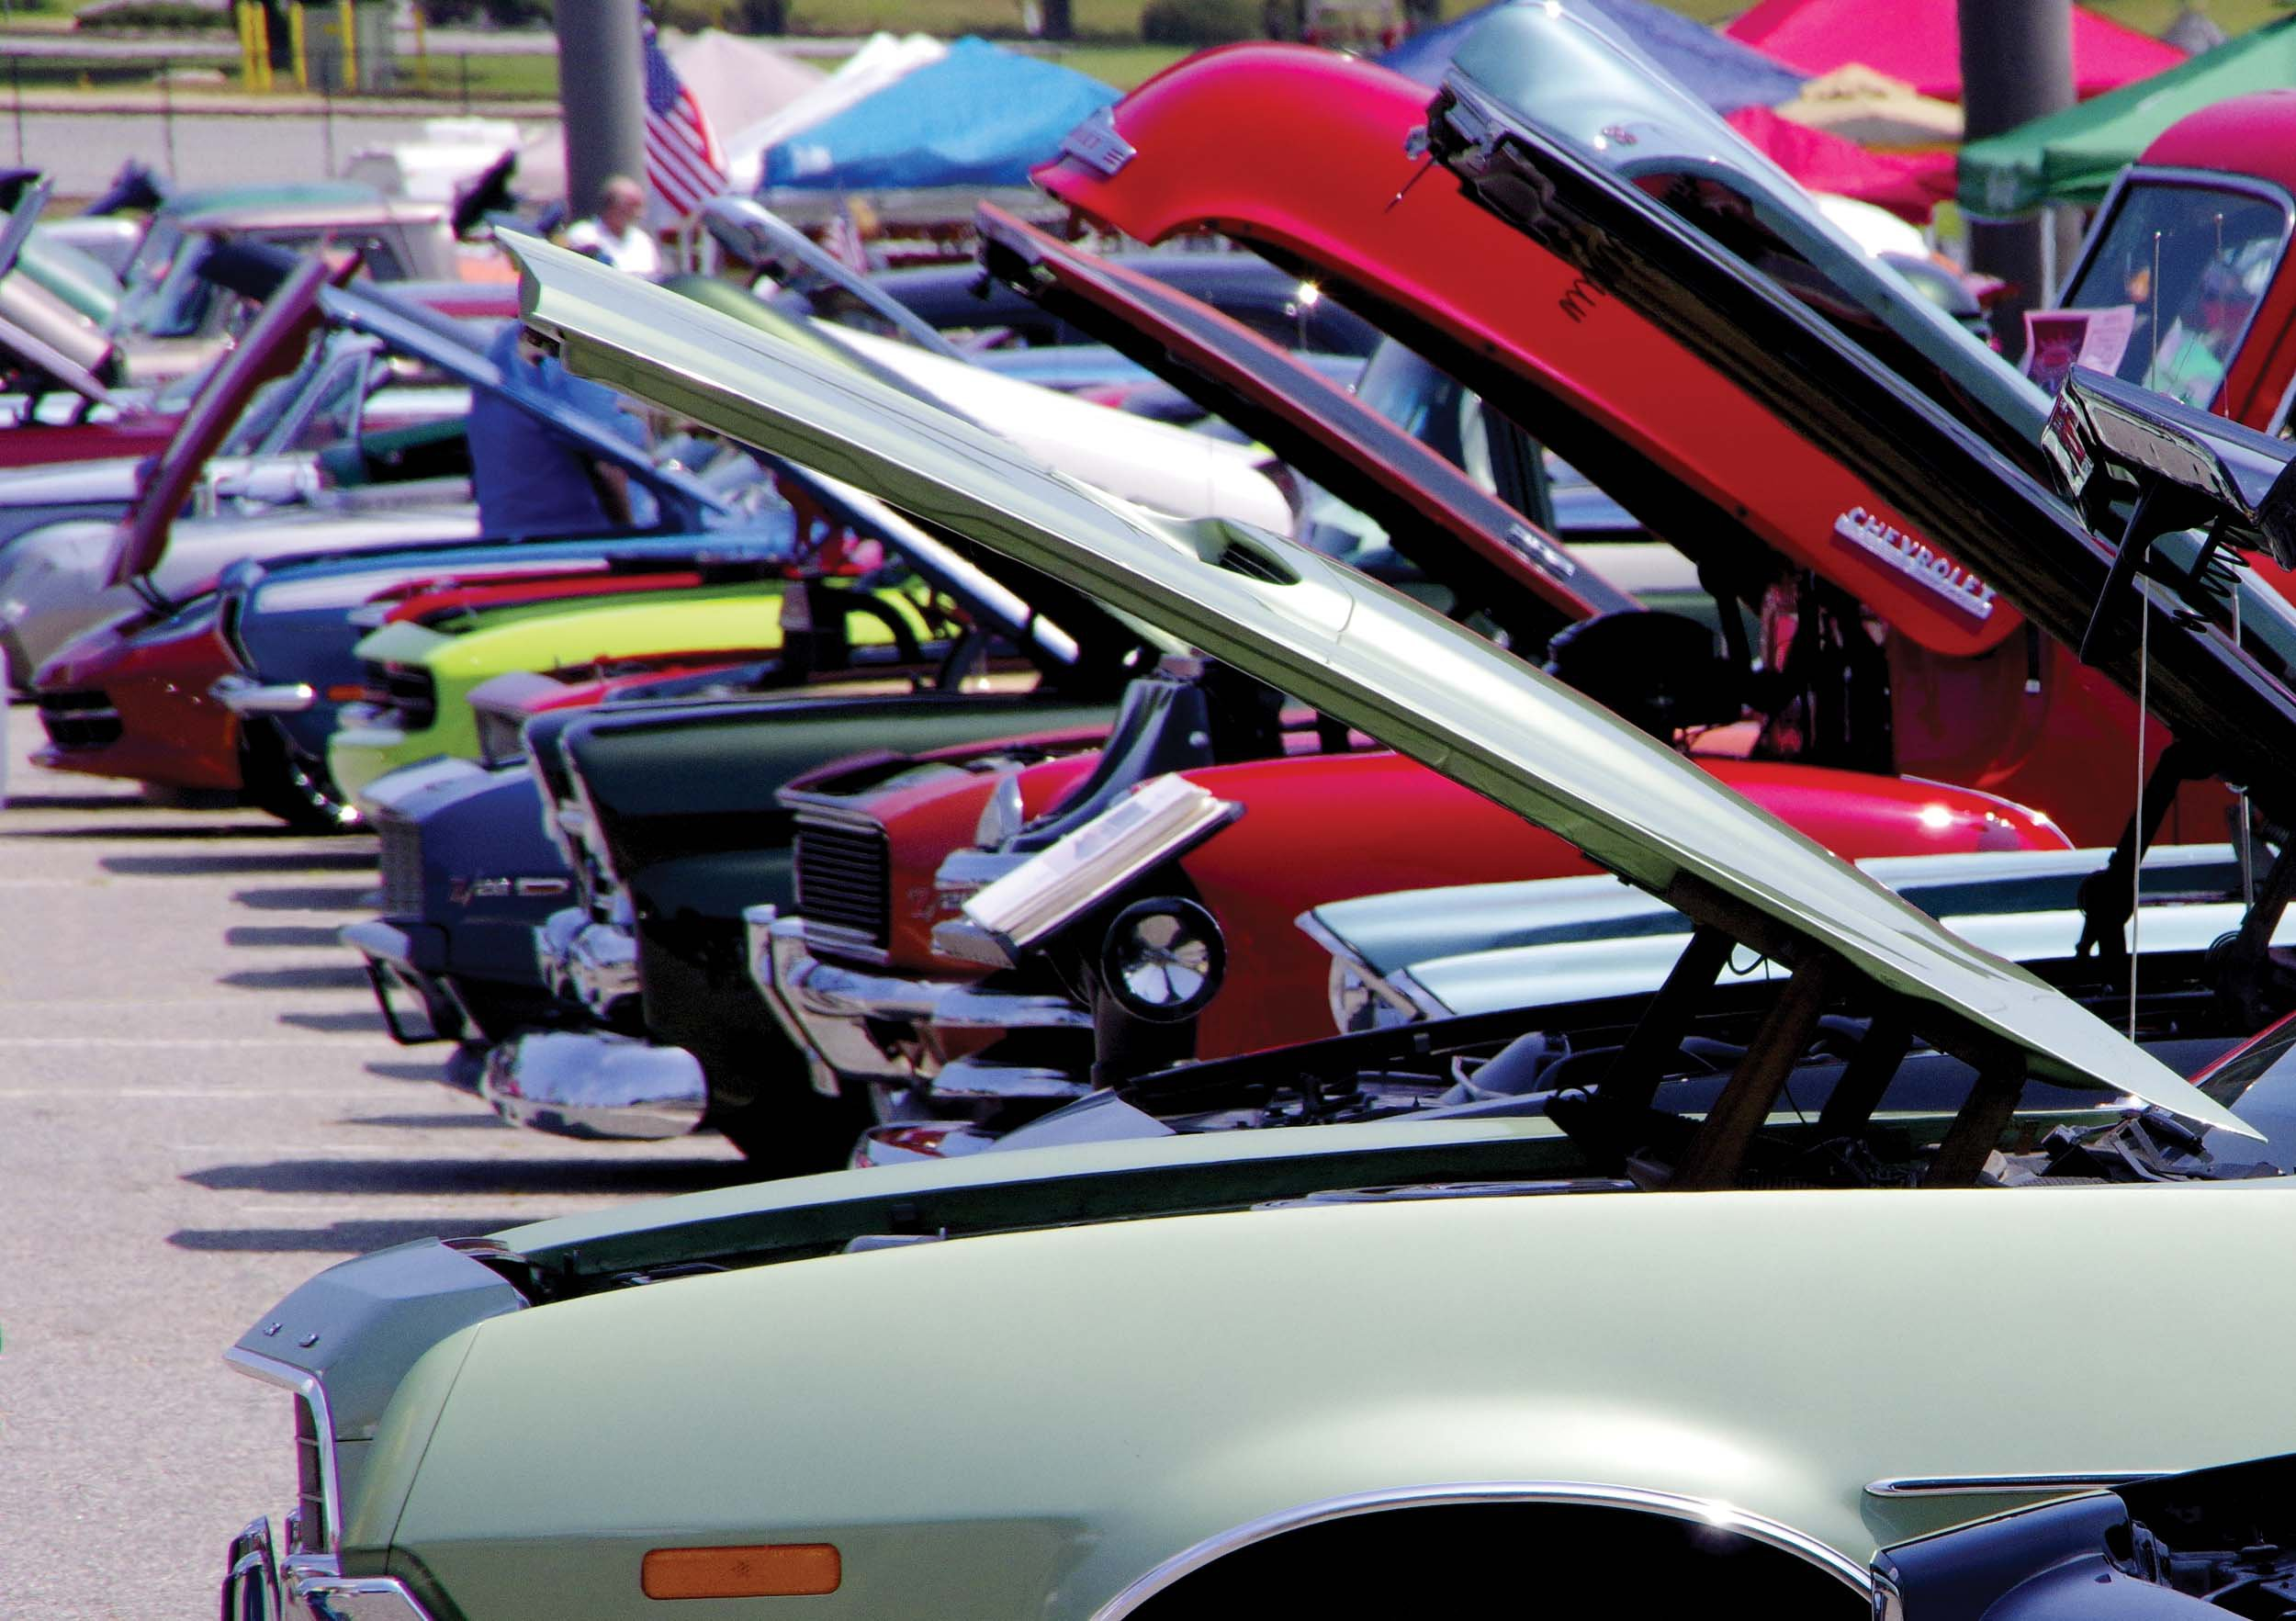 Rows of cars filled the fairgrounds for the show